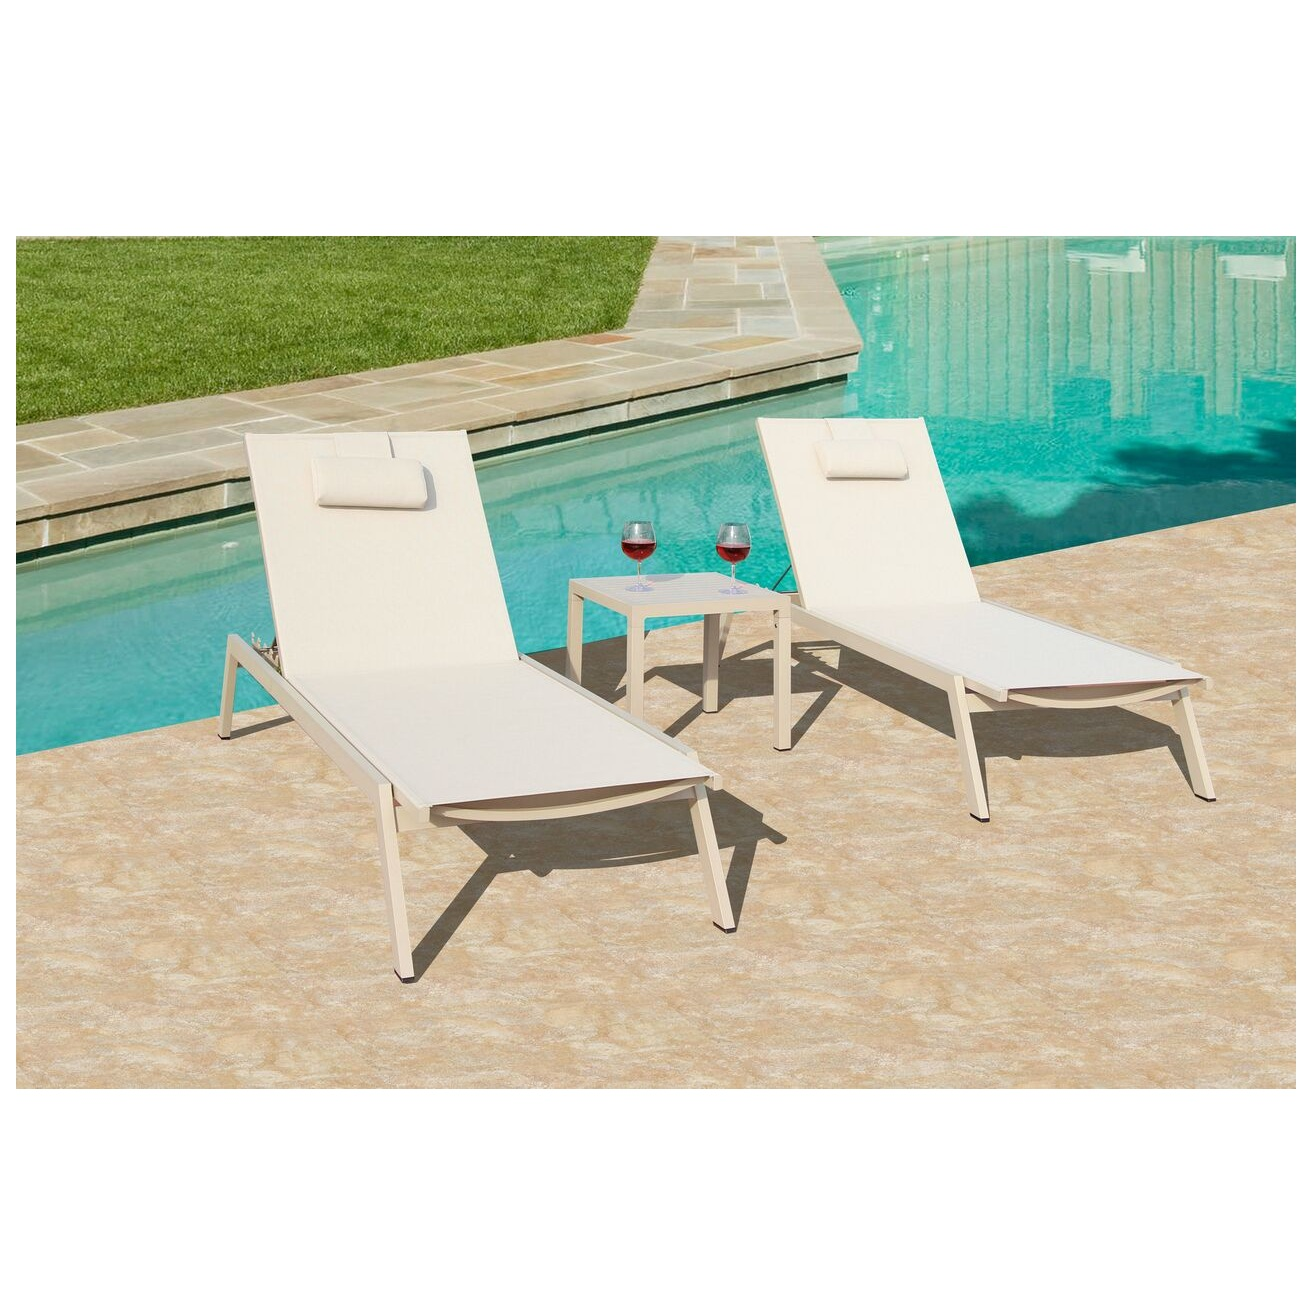 3 Piece Carina Outdoor Patio Dining Set Powder Coated Aluminum Almond Frame Finish 77.5""